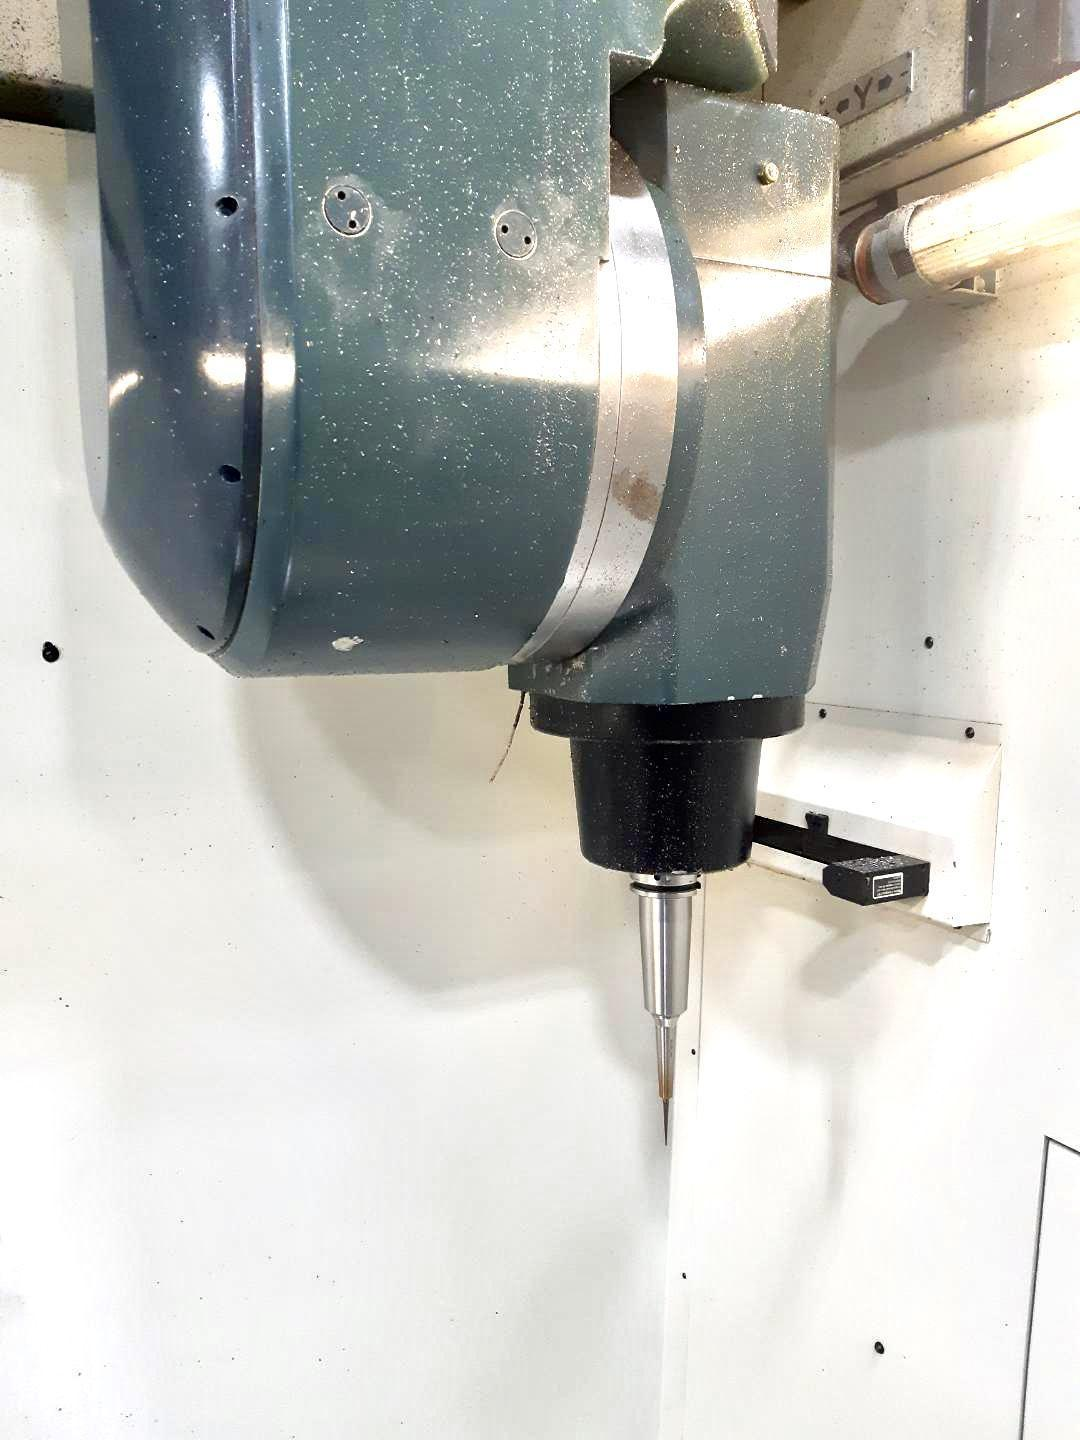 PARPAS DIAMOND 5 AXIS 2012  Third party inspection was done, see the report!